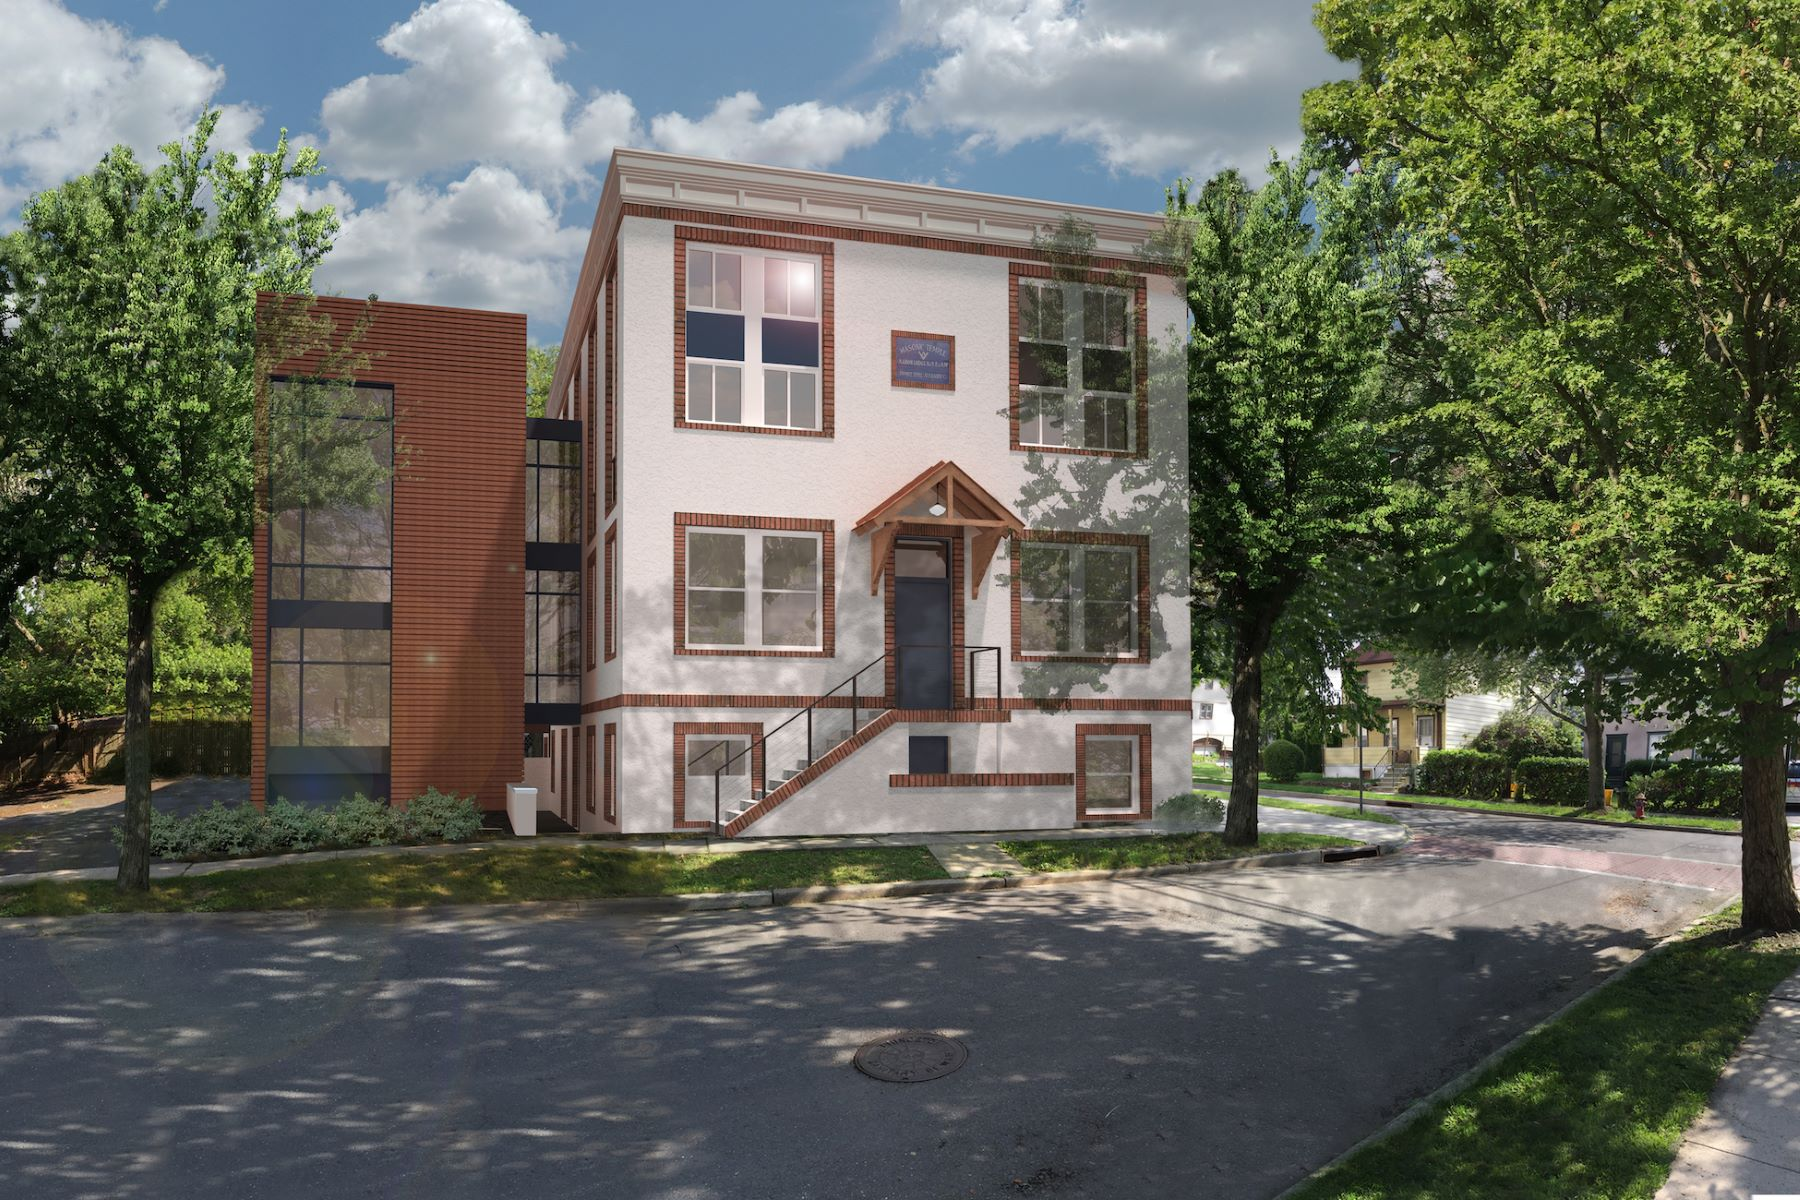 Property for Rent at Welcome to 30 Maclean! 30 Maclean Street Unit 7, Princeton, New Jersey 08542 United States